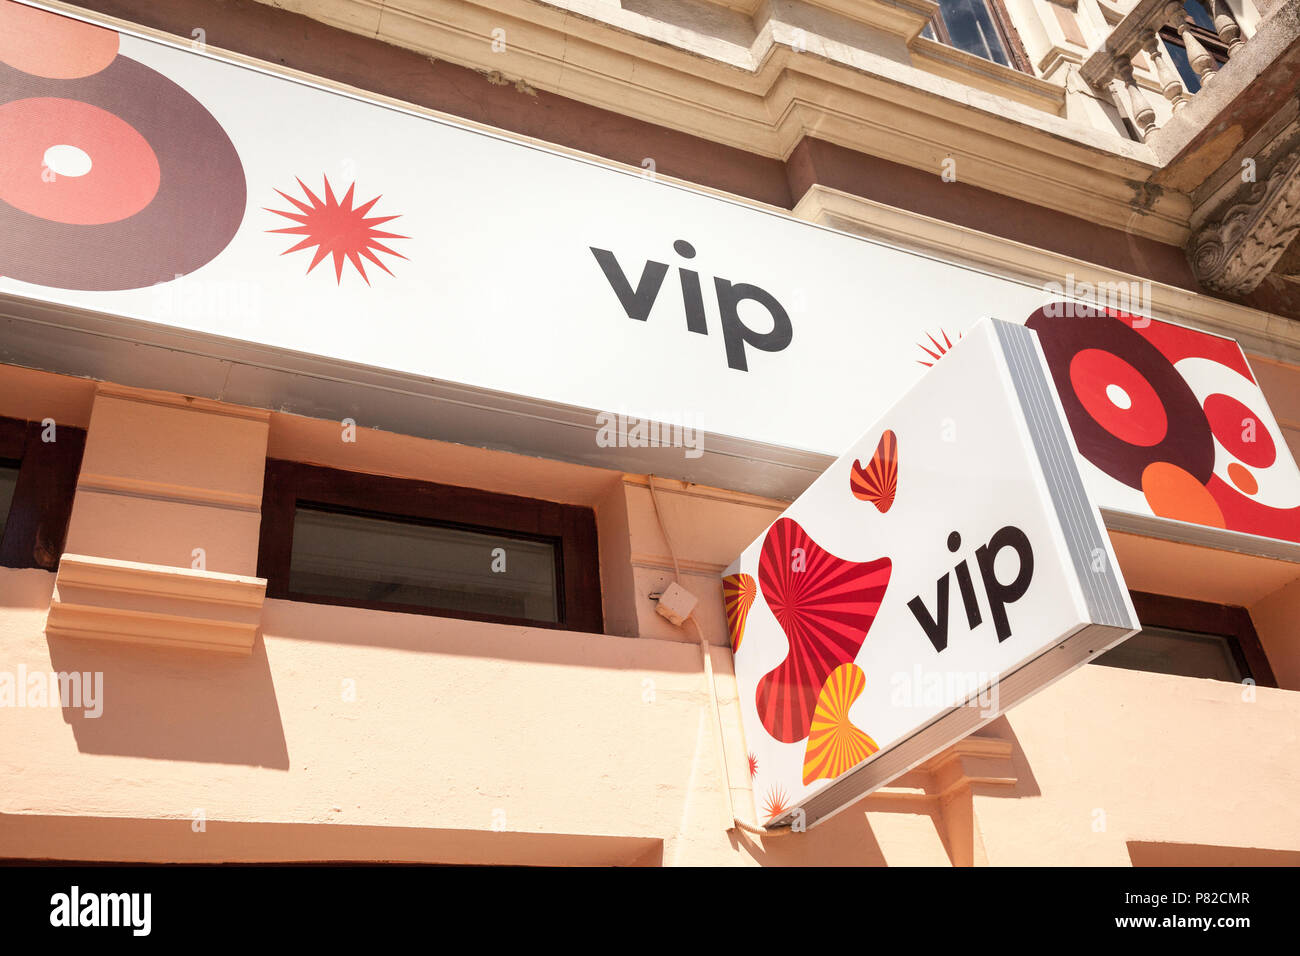 SUBOTICA, SERBIA - JULY 2, 2018: Vipnet Logo on their main shop in Subotica Vip Mobile, or Vipnet, is one of the main mobile network operator in Serbi - Stock Image